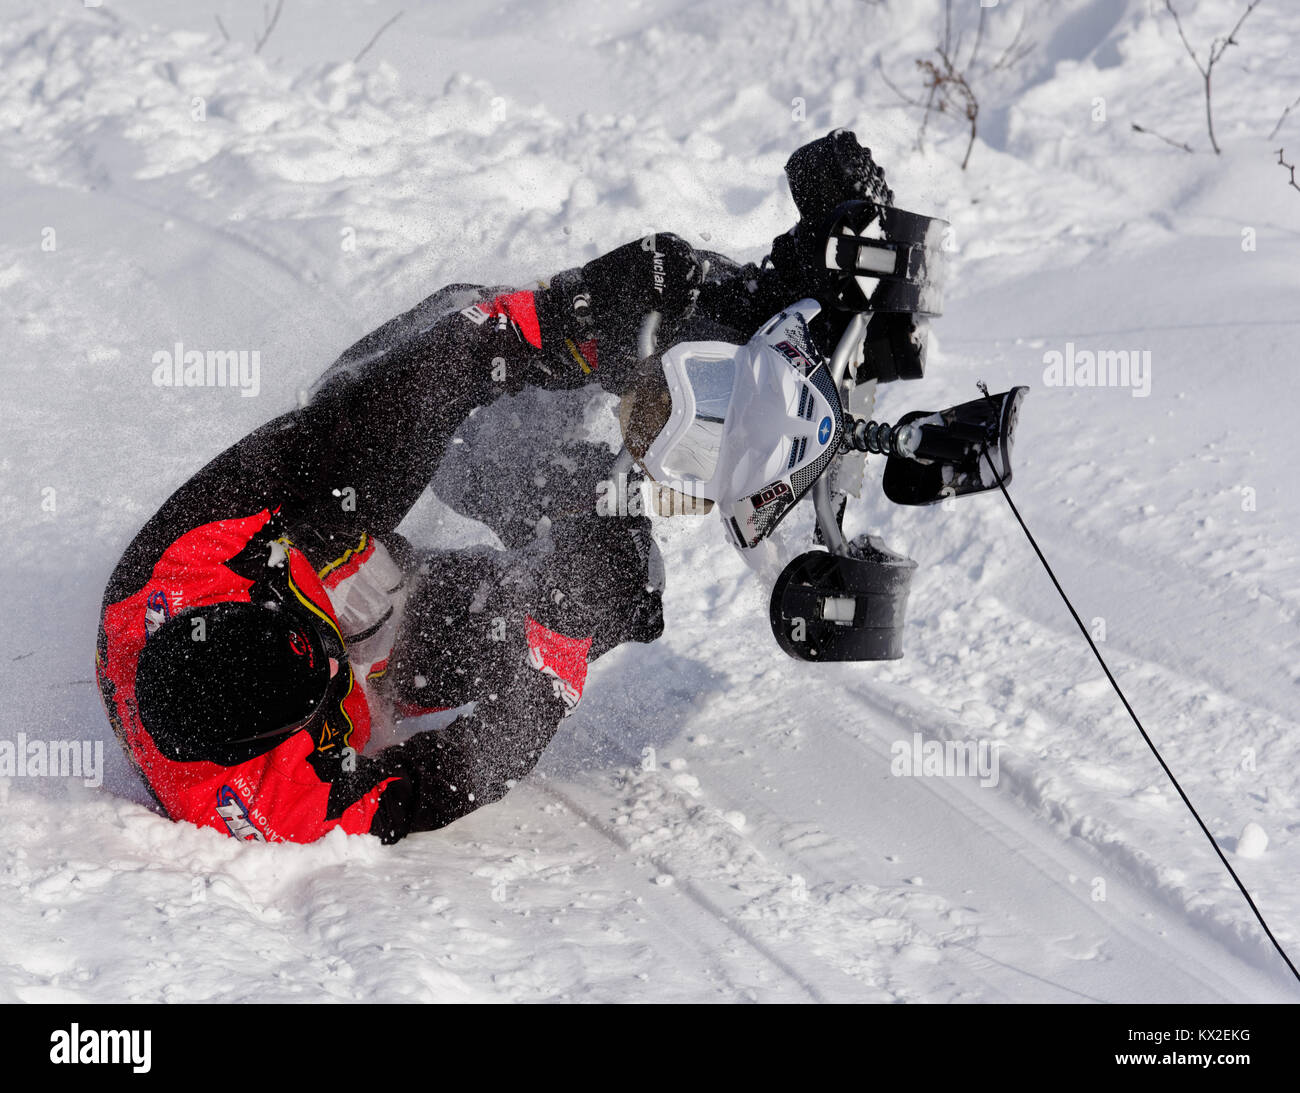 An adult man crashes his sledge - Stock Image